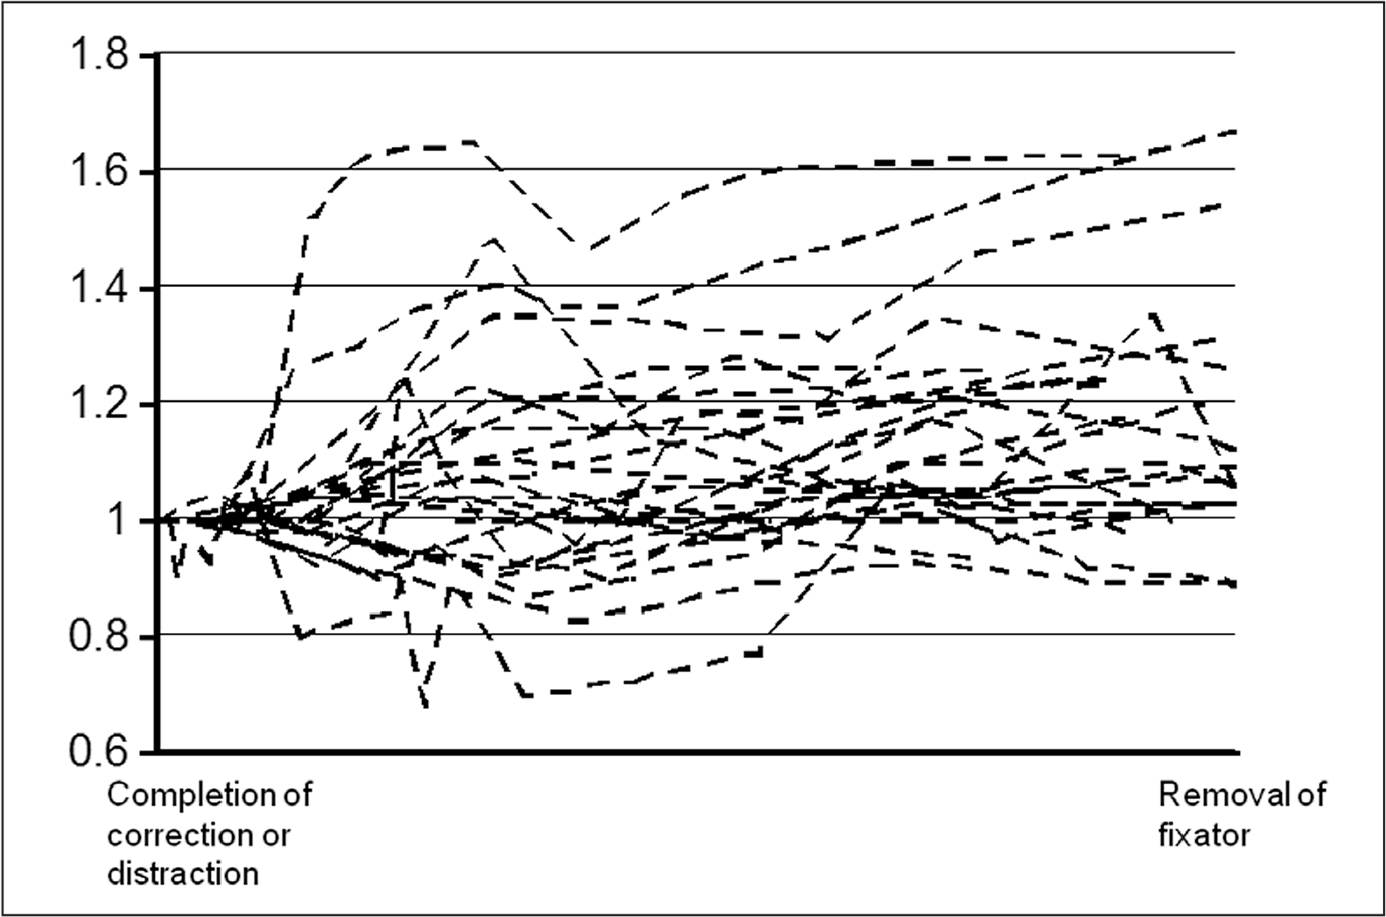 Graph showing temporal changes in overall impedance. These changes and rates of increase vary among patients. The mean maximum and final impedance values are 1.21 times and 1.15 times higher, respectively, than the baseline values; these differences are significant.